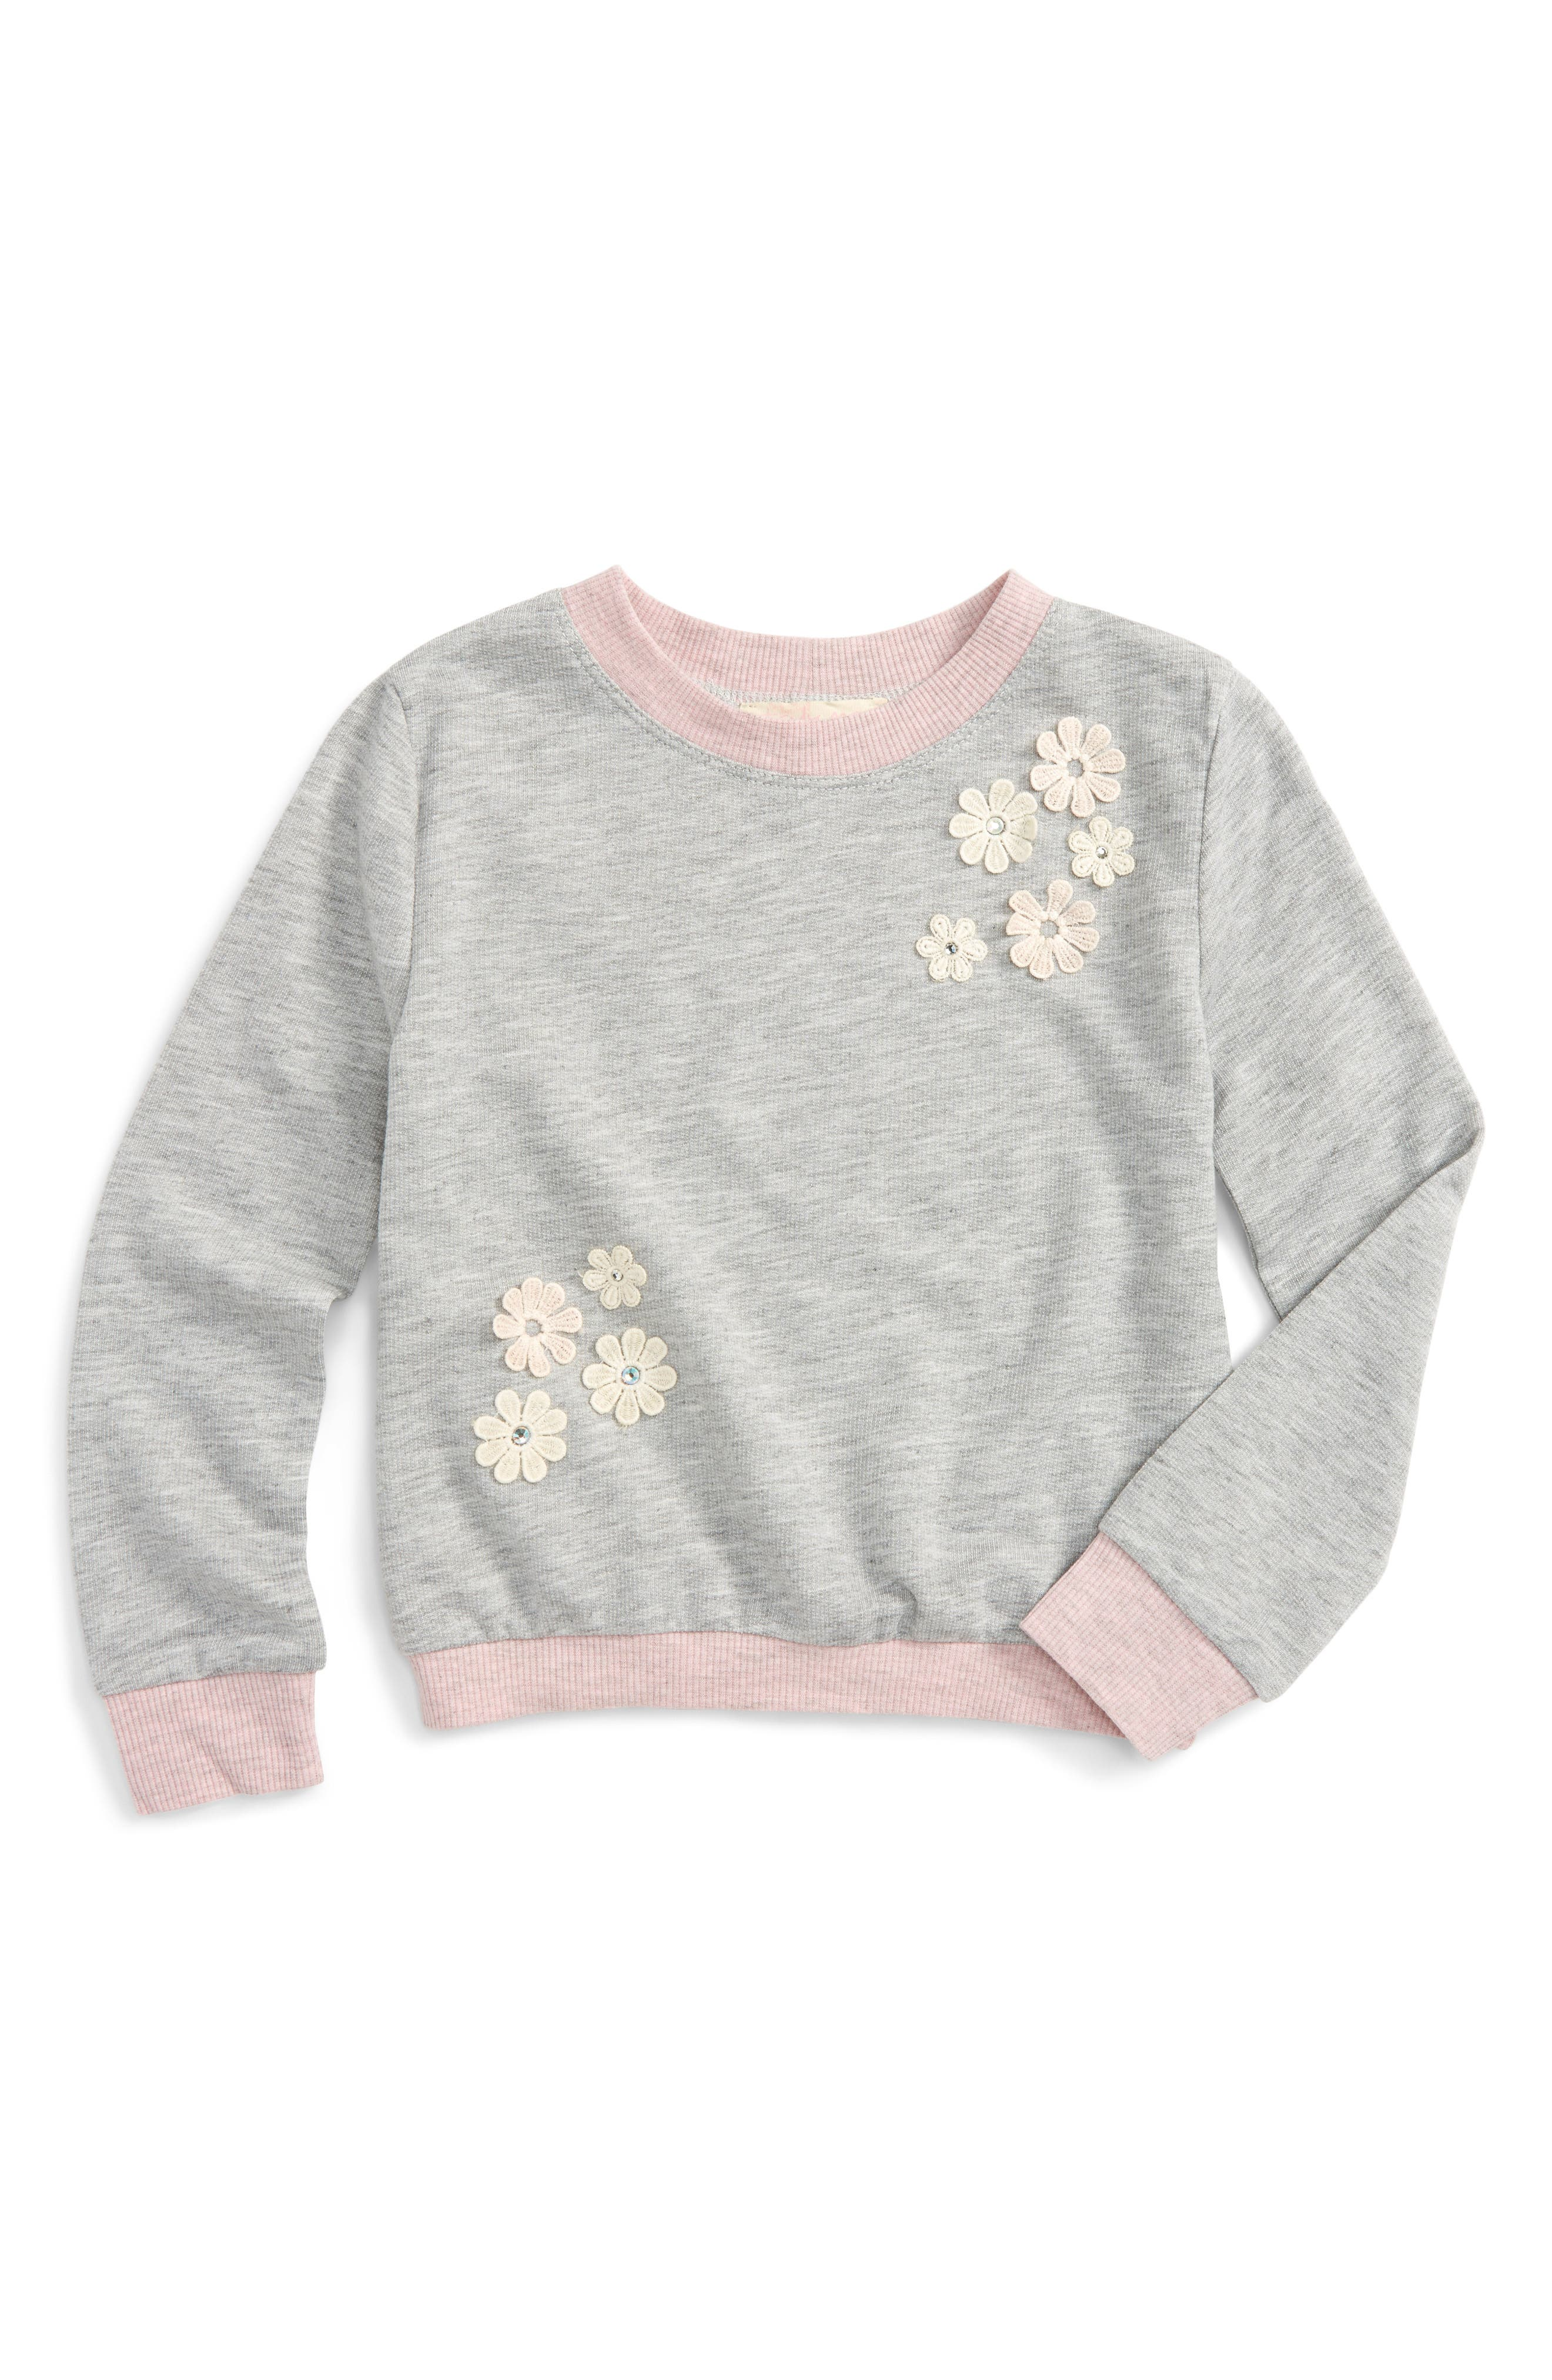 Main Image - Truly Me Floral Appliqué Sweatshirt (Toddler Girls & Little Girls)